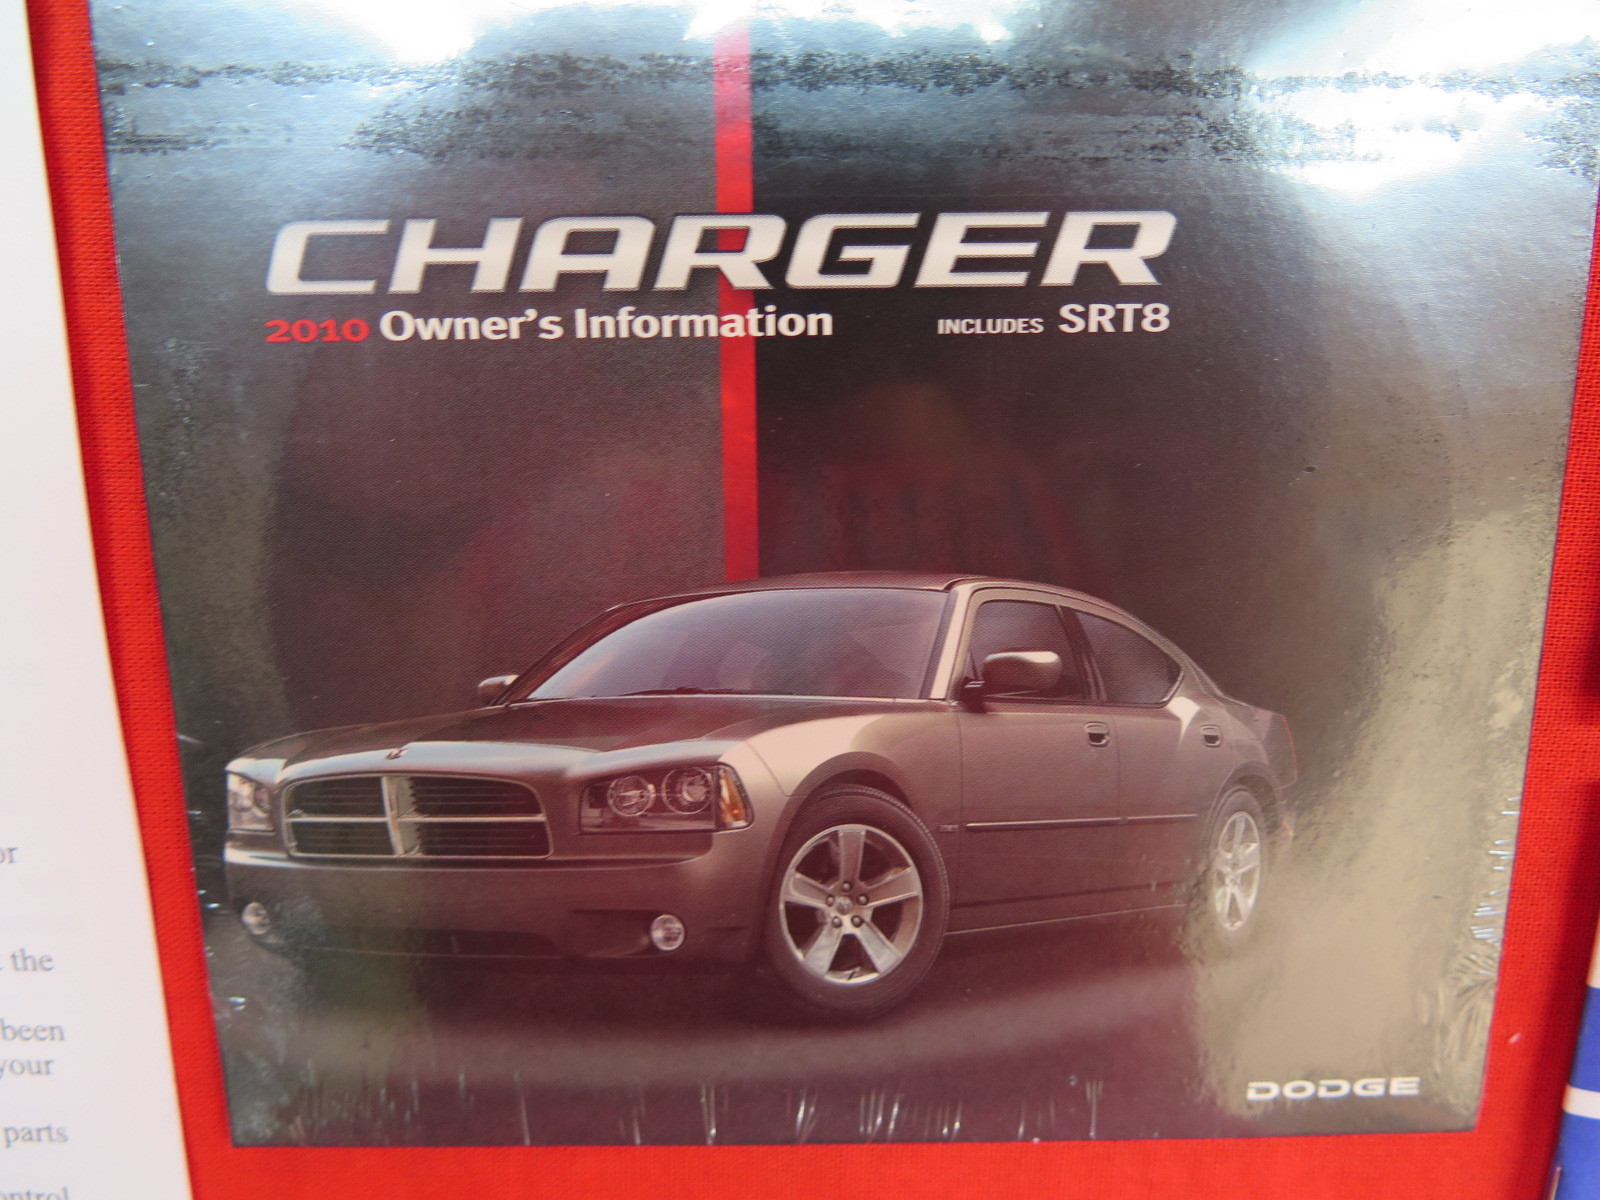 28 2010 dodge charger owners manual 28224 blog archives rh rencontrefemmesseule space 2010 dodge charger service manual pdf 2010 dodge charger srt8 owner's manual